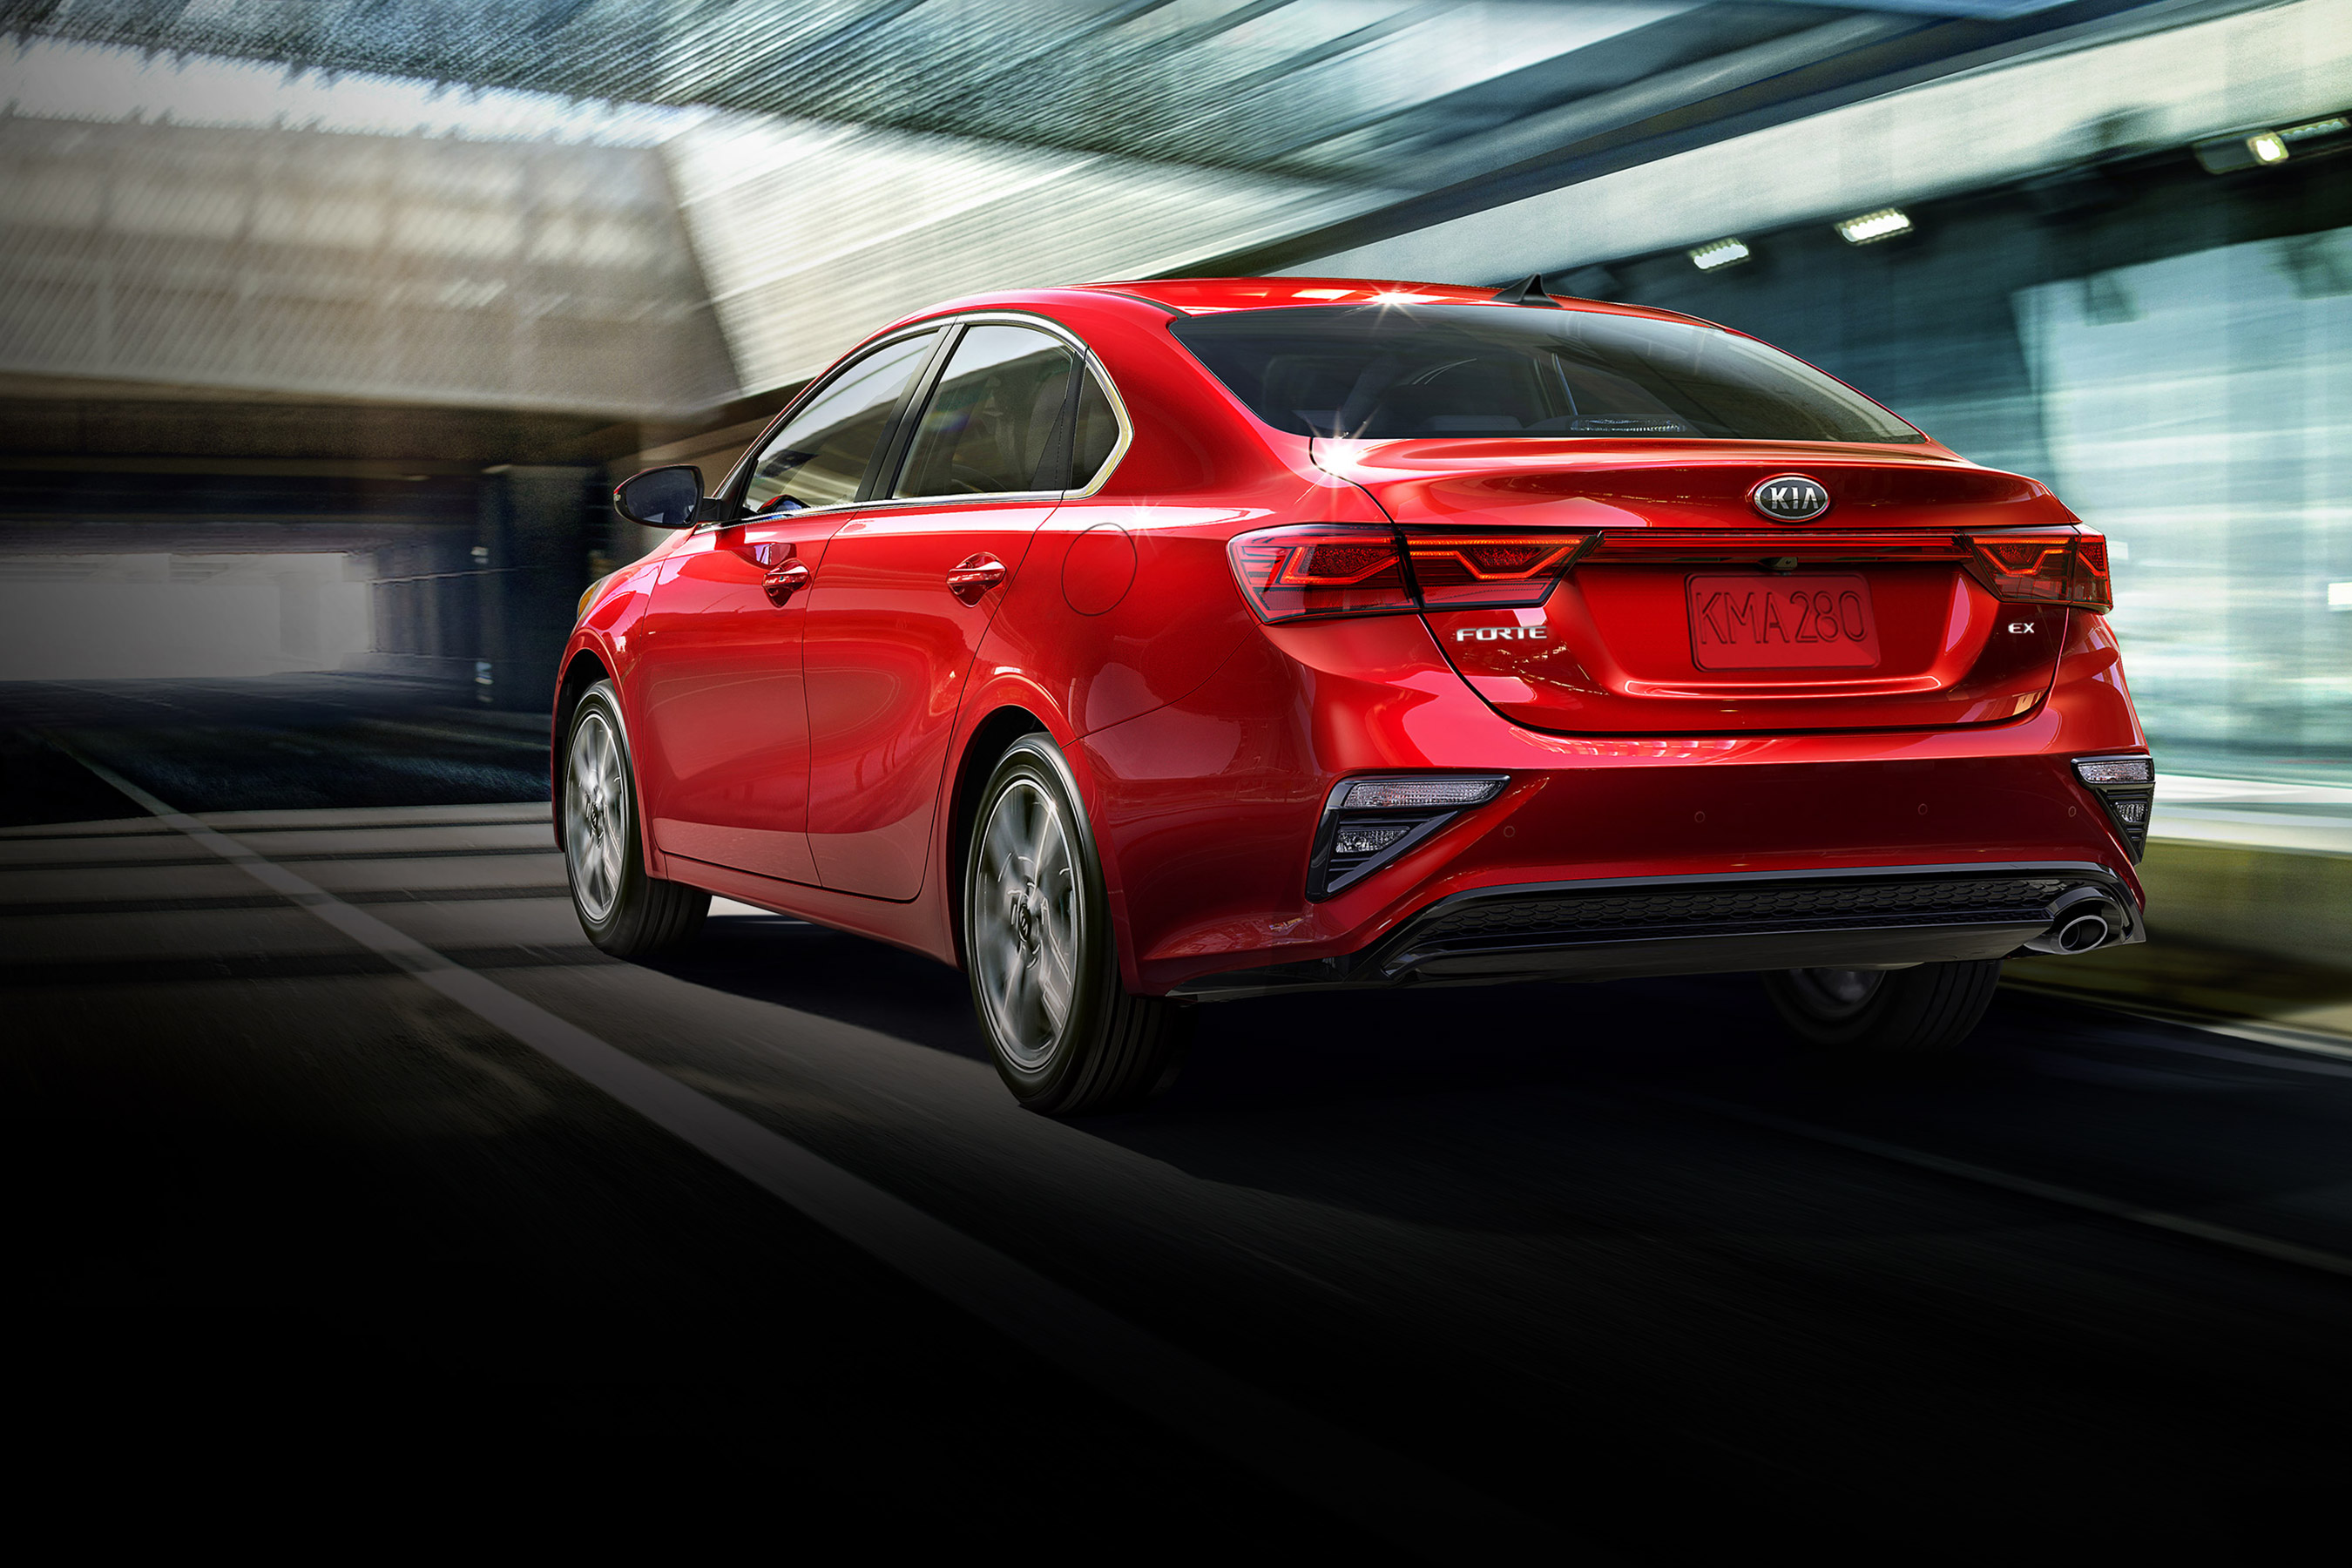 2020 Kia Forte Rear View Red Exterior Picture